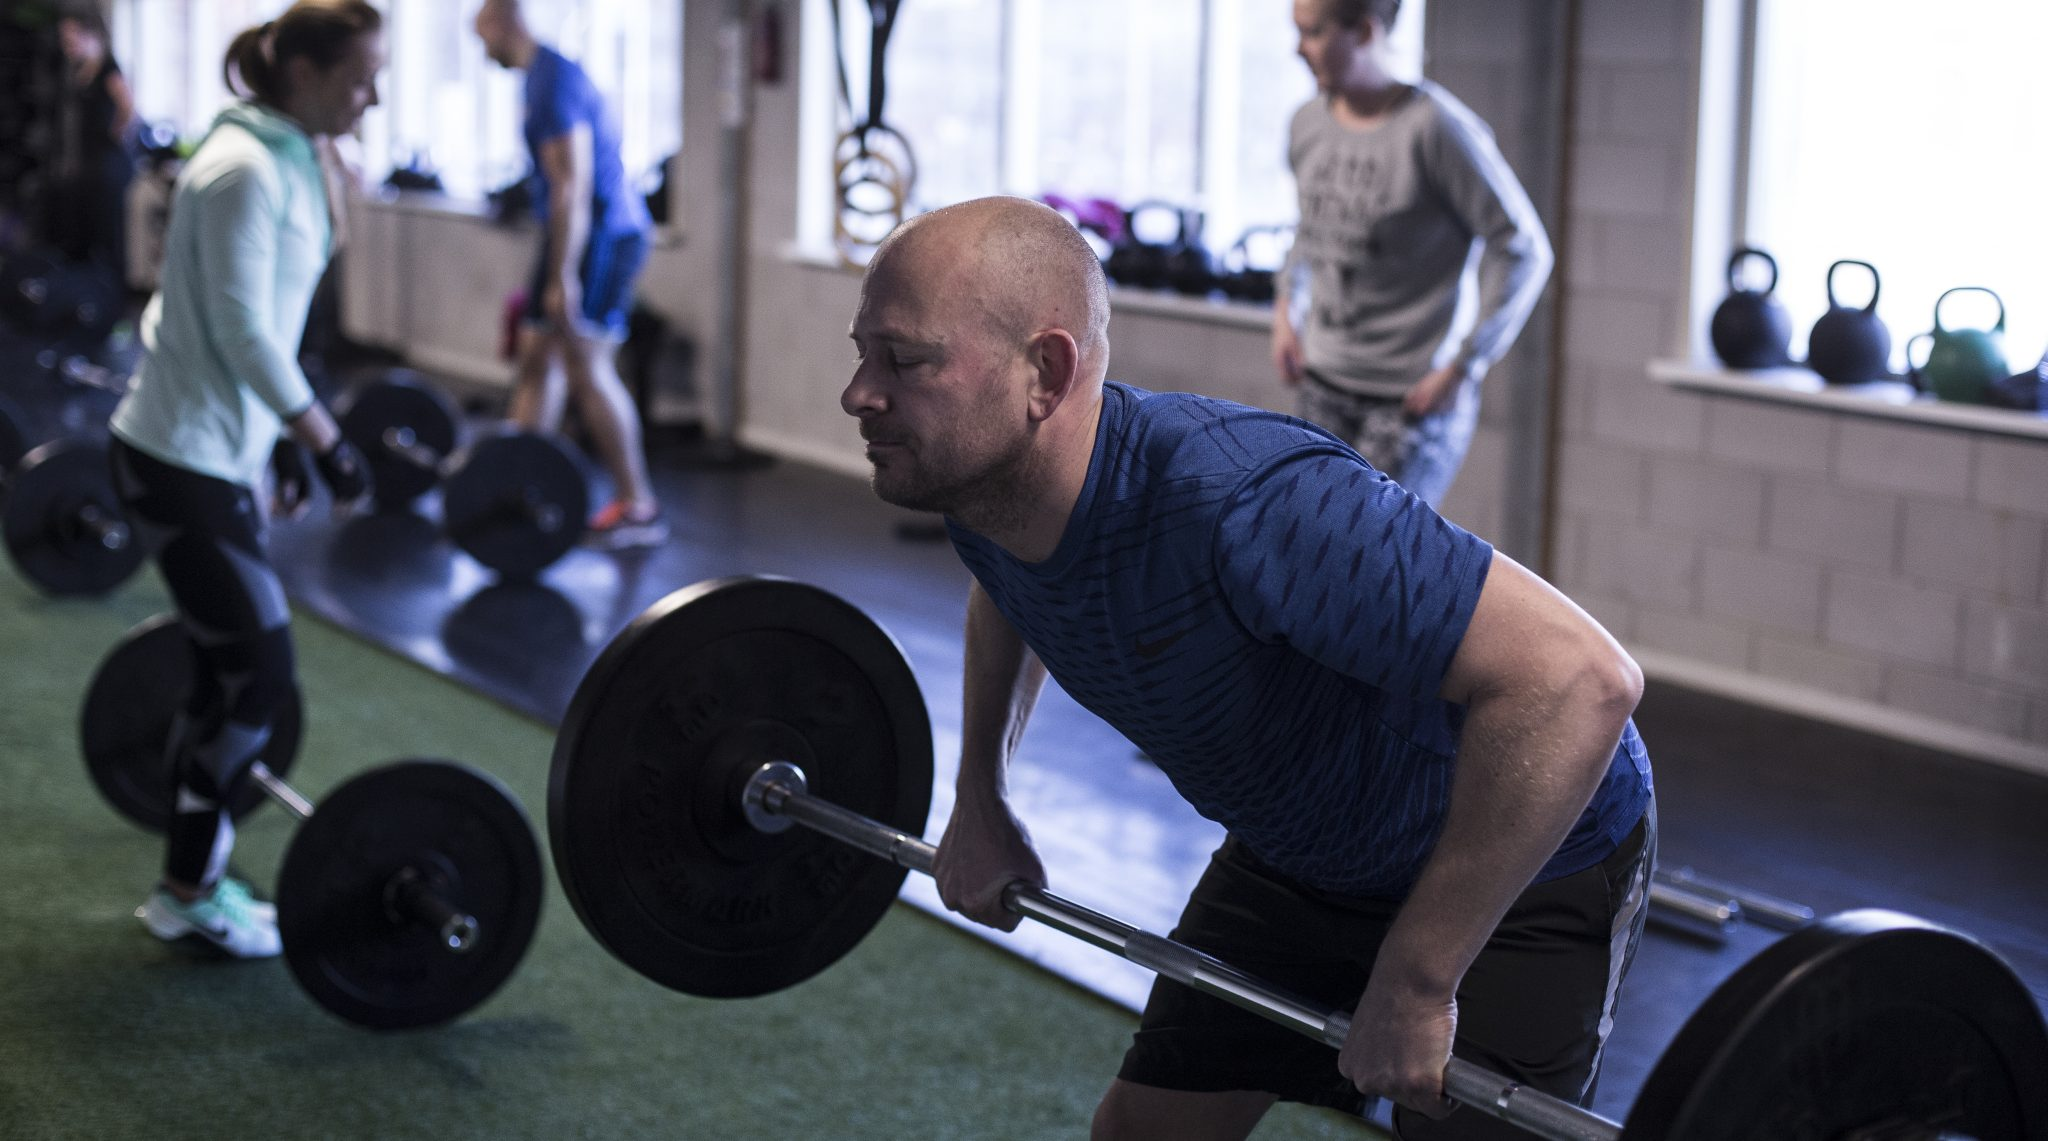 5ae39dd8932 Rooster - Crossfit Papendrecht